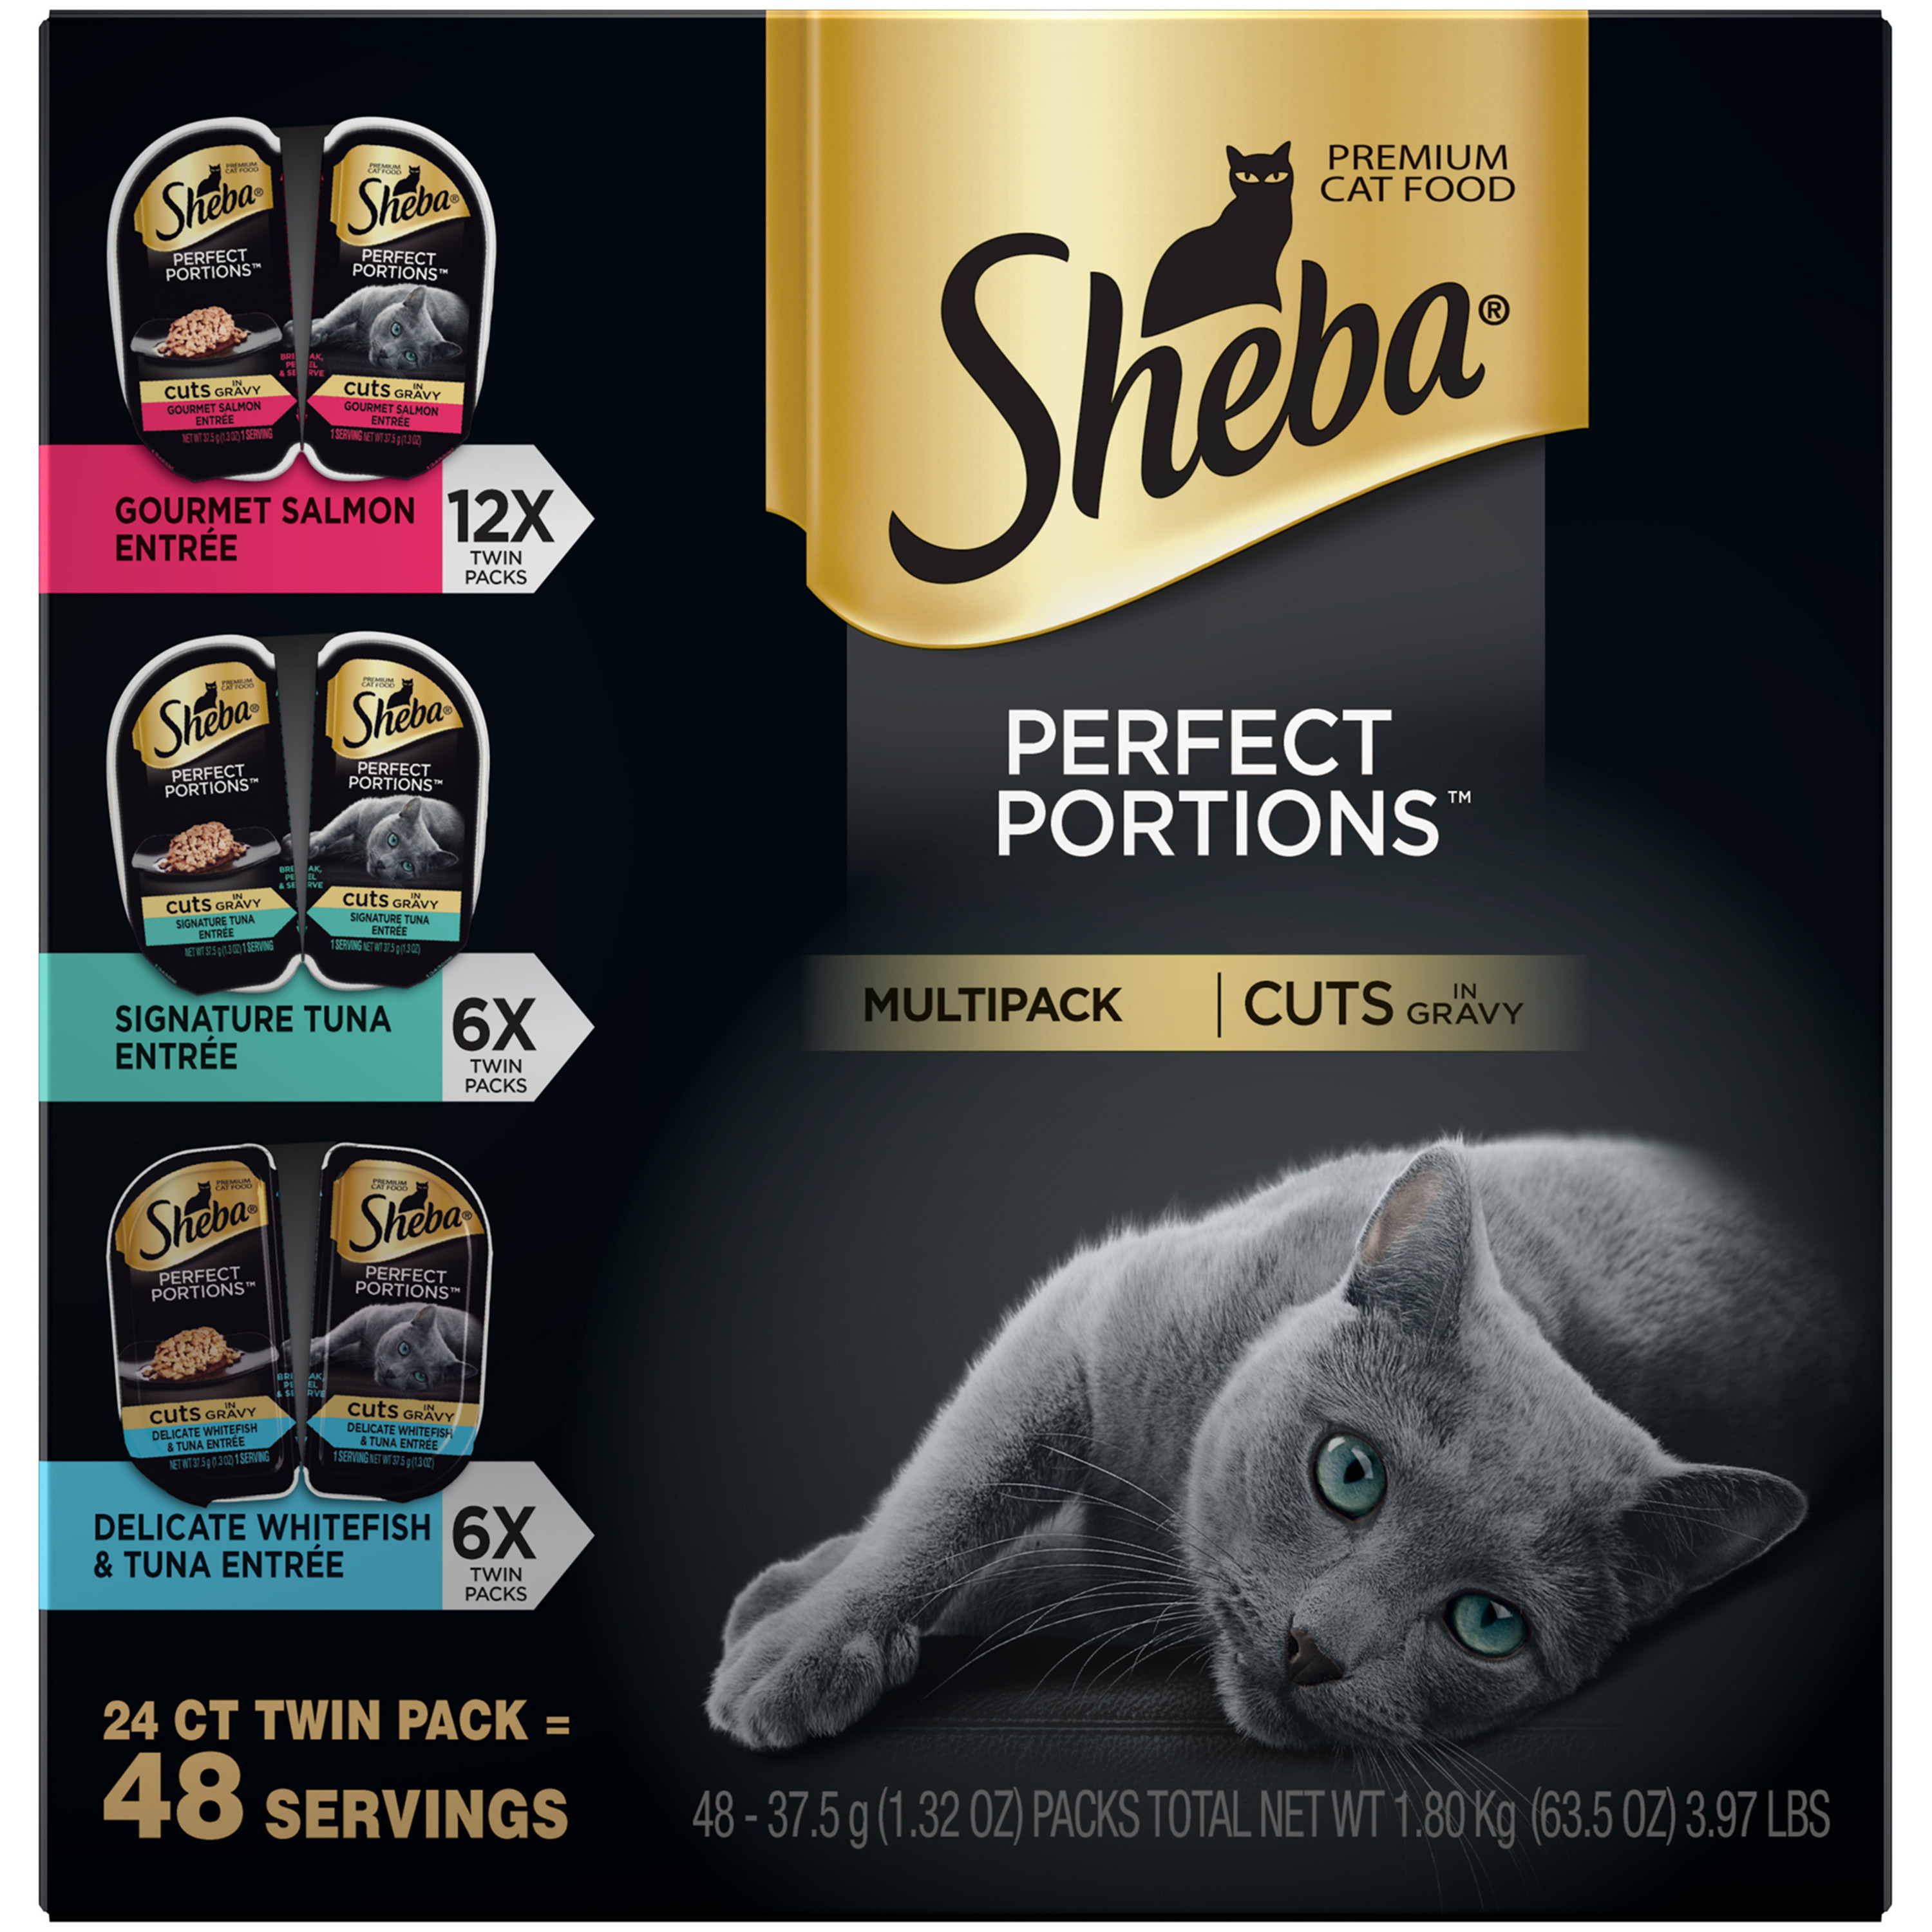 Sheba Perfect Portions Cuts In Gravy Multipack Gourmet Salmon, Signature Tuna, Delicate Whitefish & Tuna Grain Free Wet Cat Food 2.6 Ounces (6 Twin Packs)